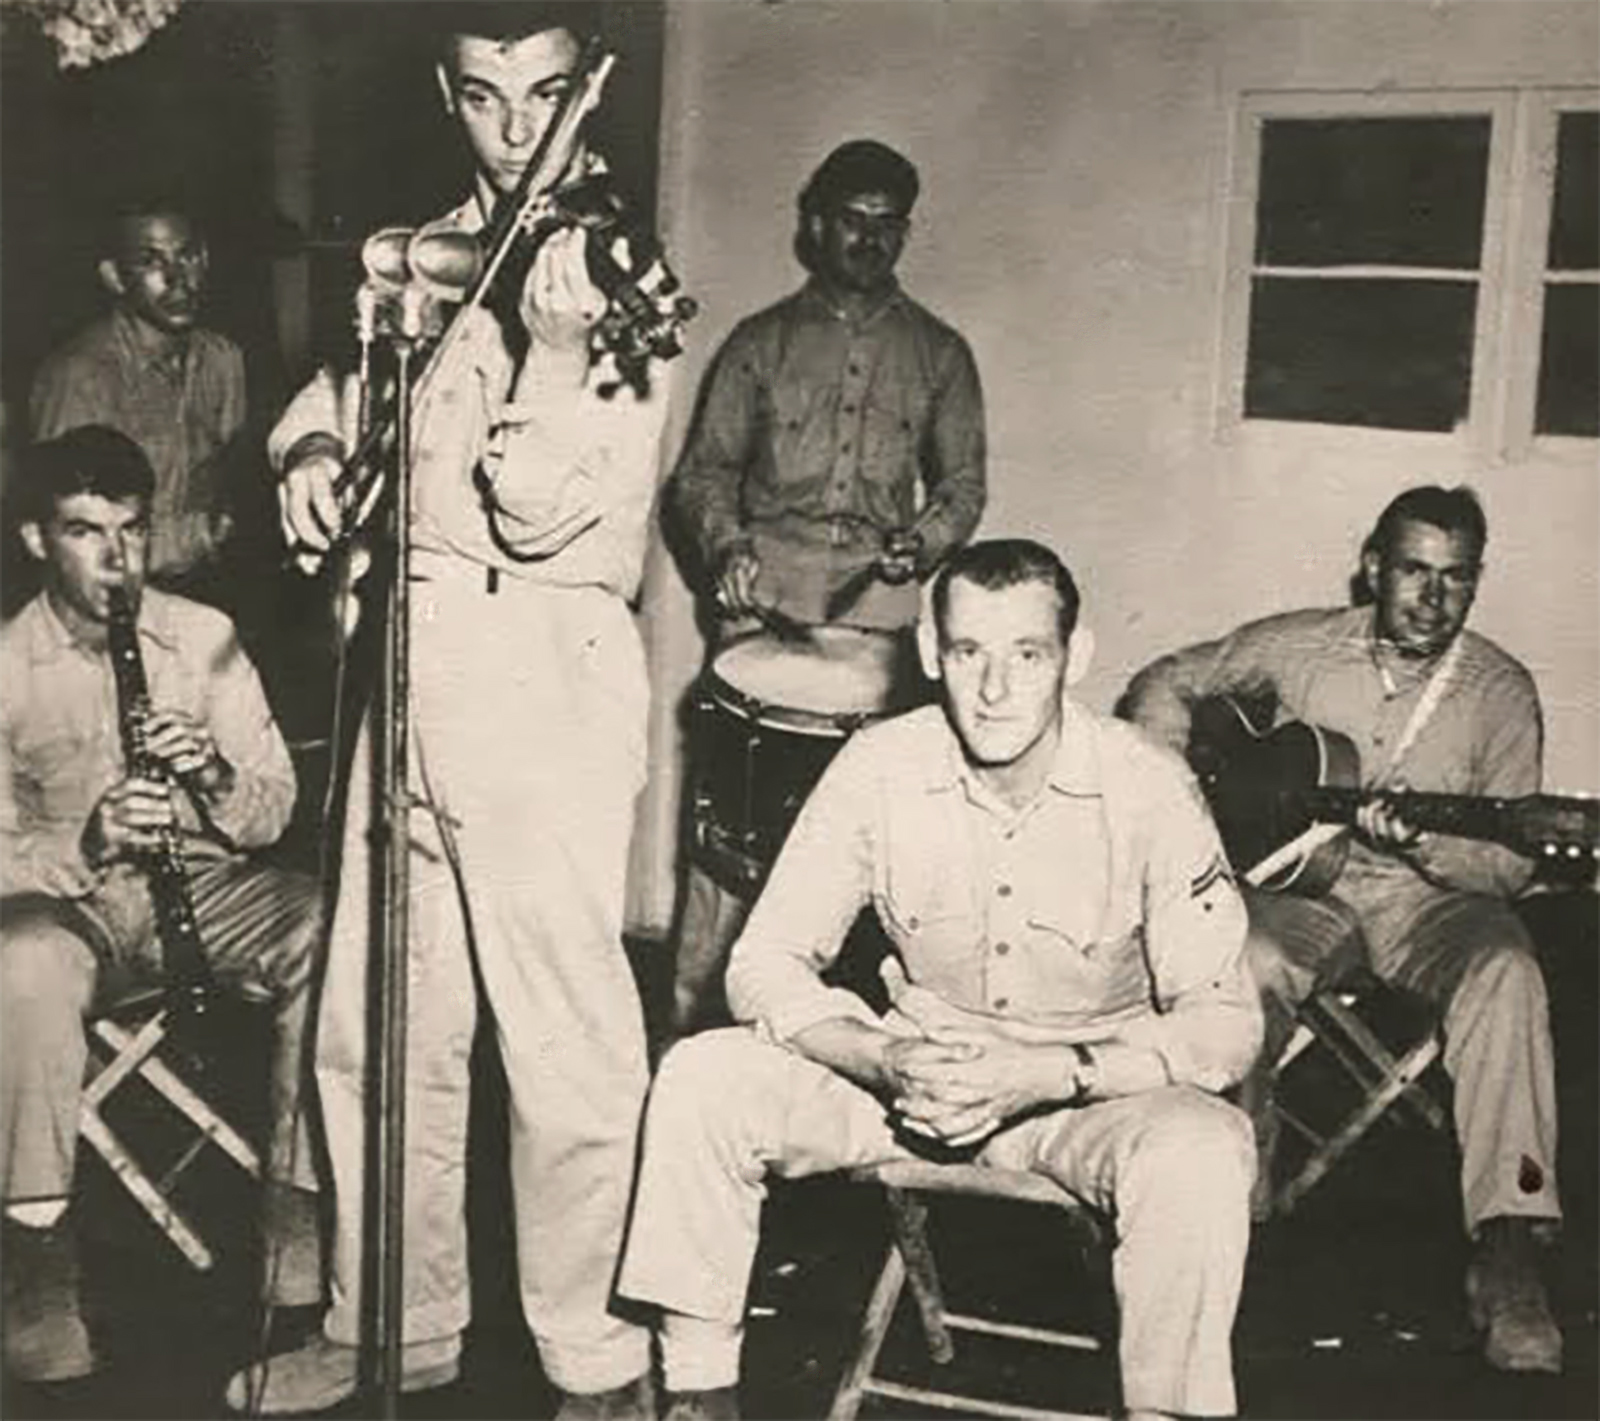 Bobby Bruce in WWII